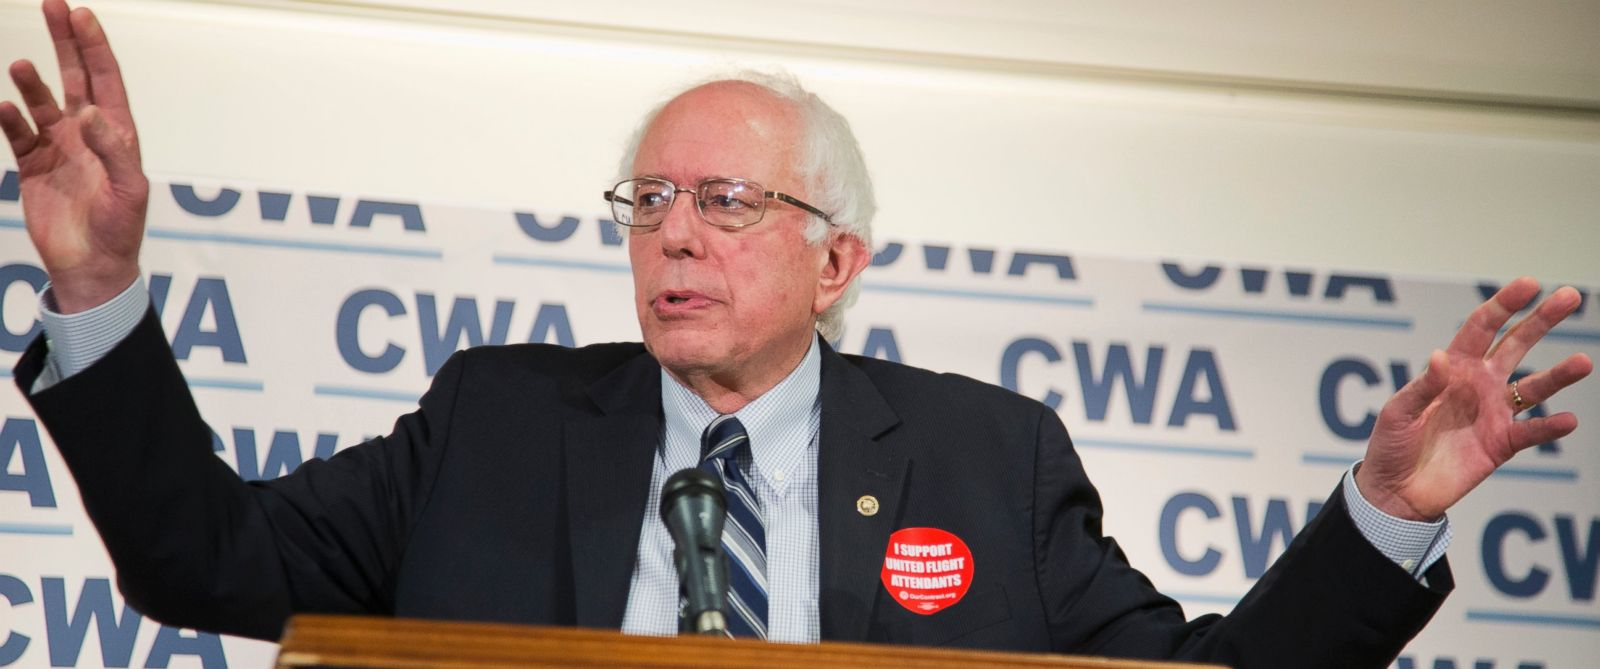 PHOTO: Democratic presidential candidate Sen. Bernie Sanders, I-Vt., speaks to reporters and members of the Communication Workers of America (CWA), following the unions endorsement of Sanders, Dec. 17, 2015, at the CWAs headquarters in Washington.